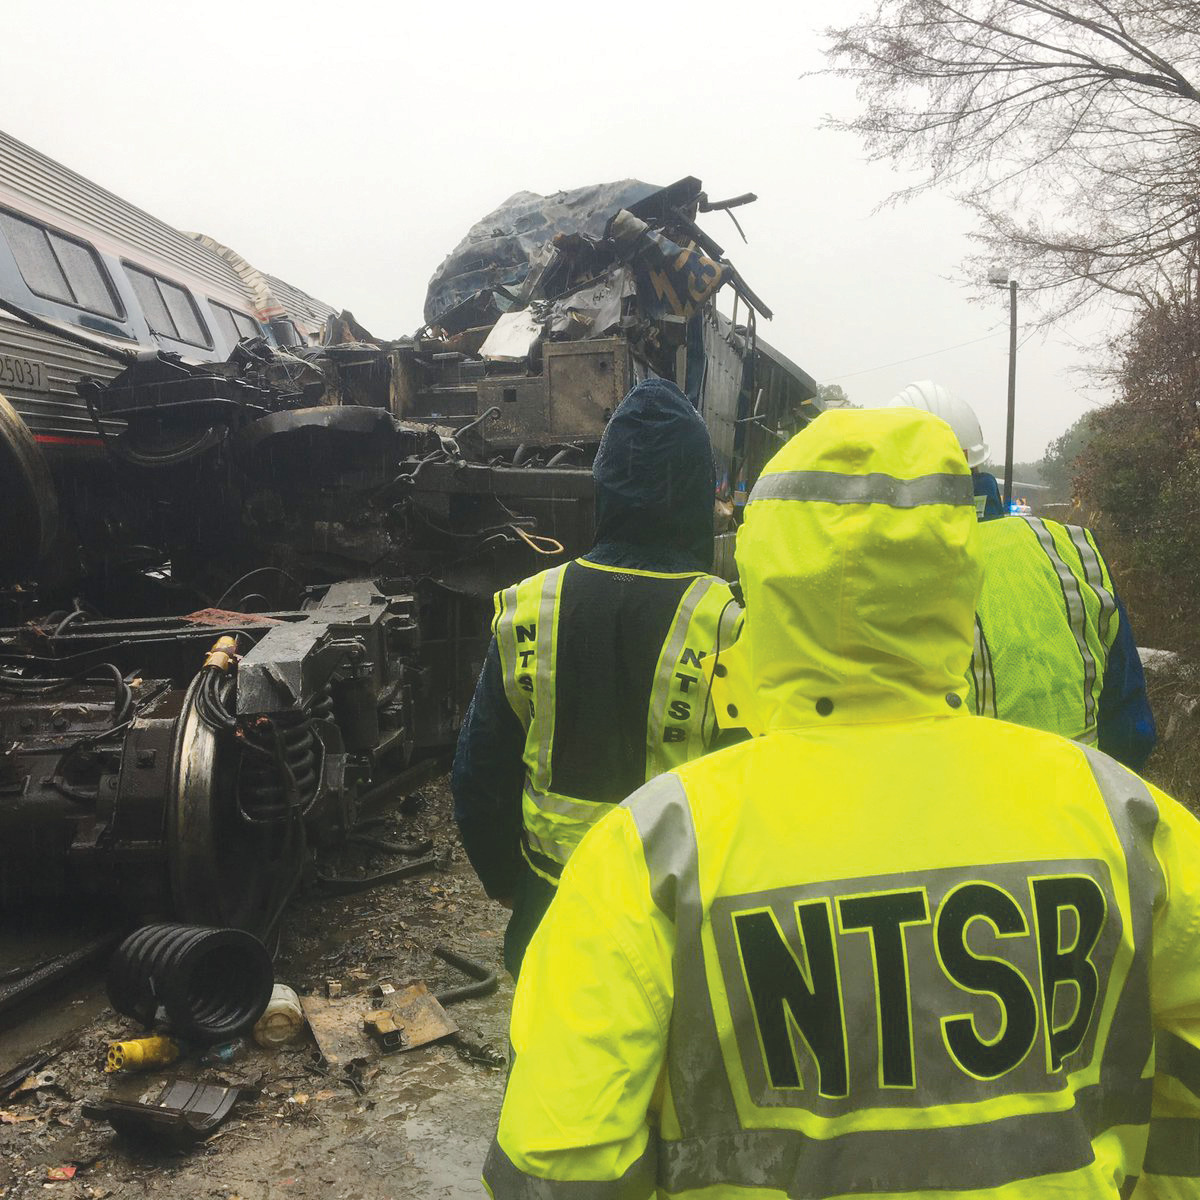 NTSB investigators inspect the Amtrak Train 91/CSX collision in Cayce, South Carolina.